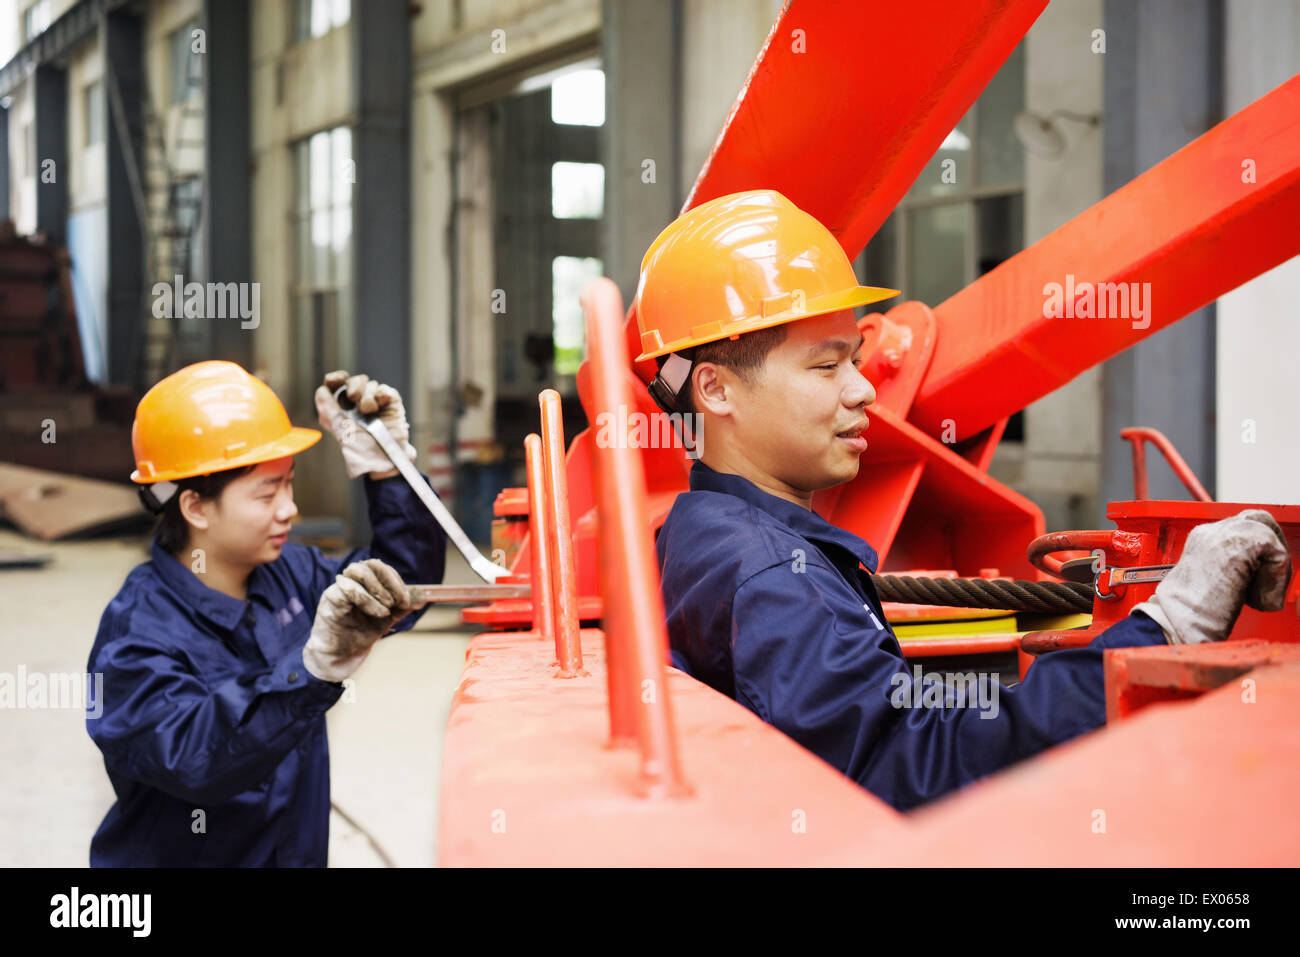 Workers using equipment in crane manufacturing facility